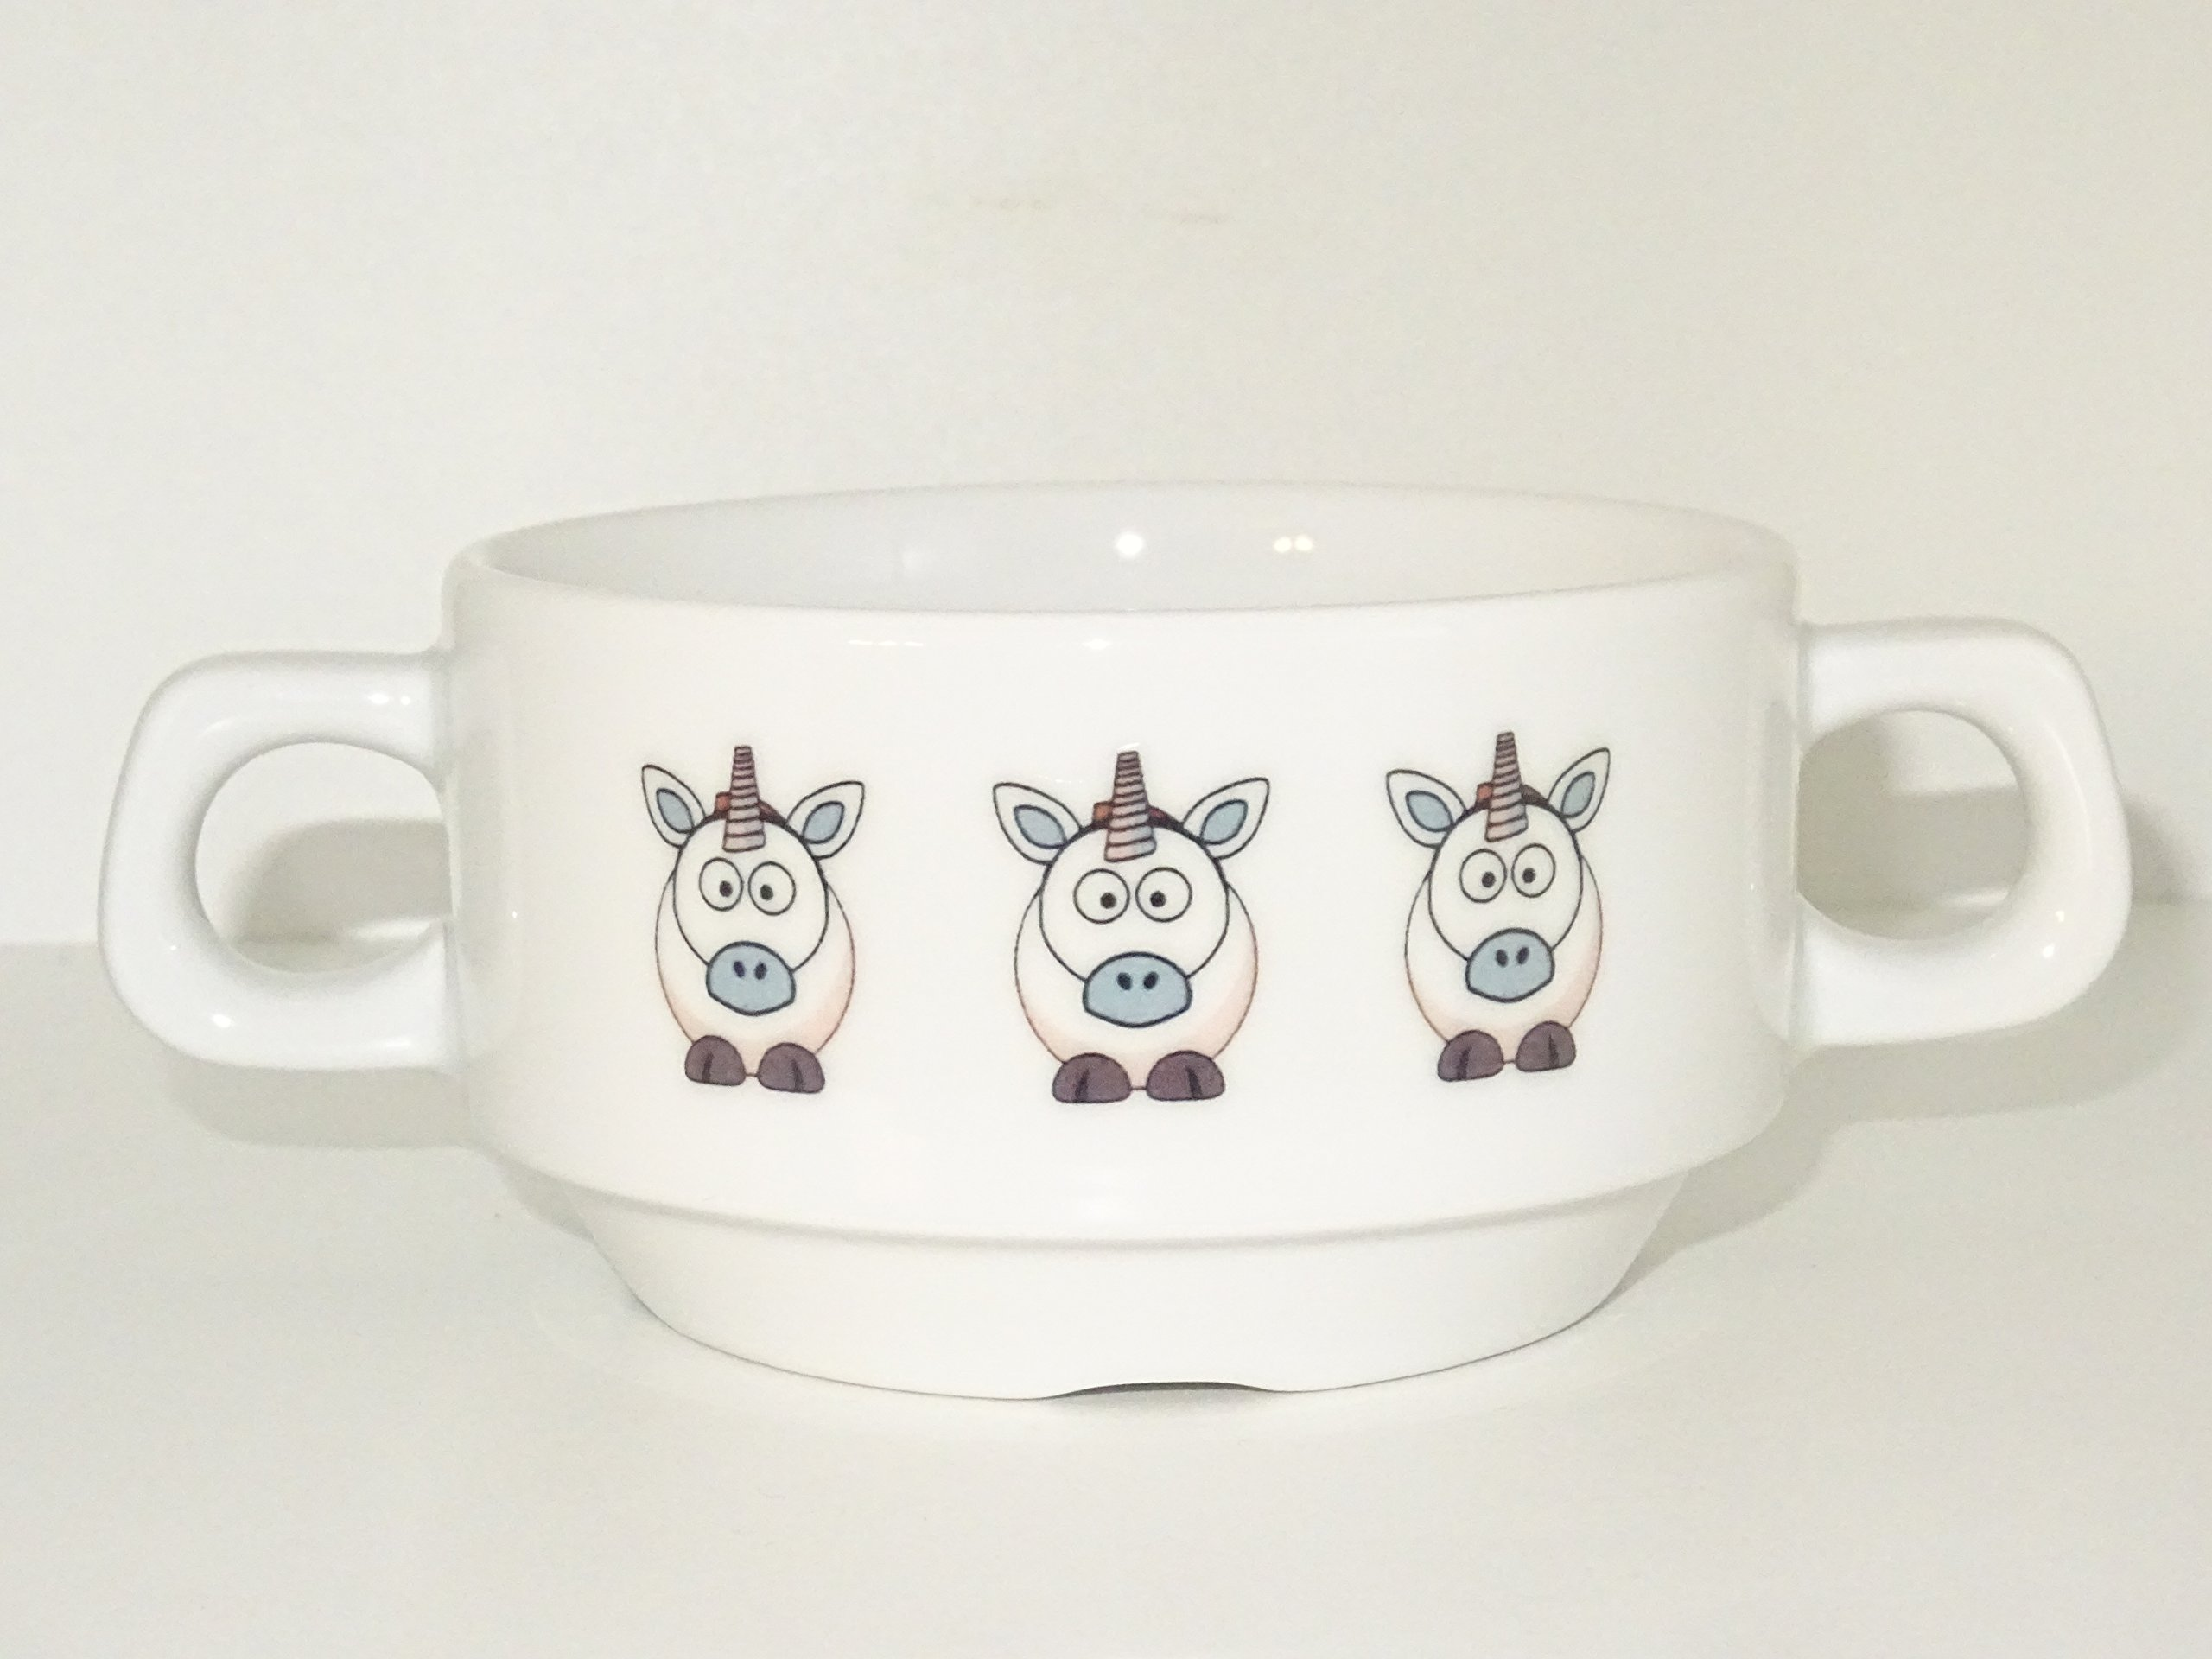 Soup Bowl 17, 1 pcs, Unicorn Soup Bowl Small Baby Child Kids, Bottom, Hidden Message, Secret Message, Animal,Donkey, Cartoon, Cute Animals, Farm, Horse, Kids, Porcelain by topmug (Image #3)